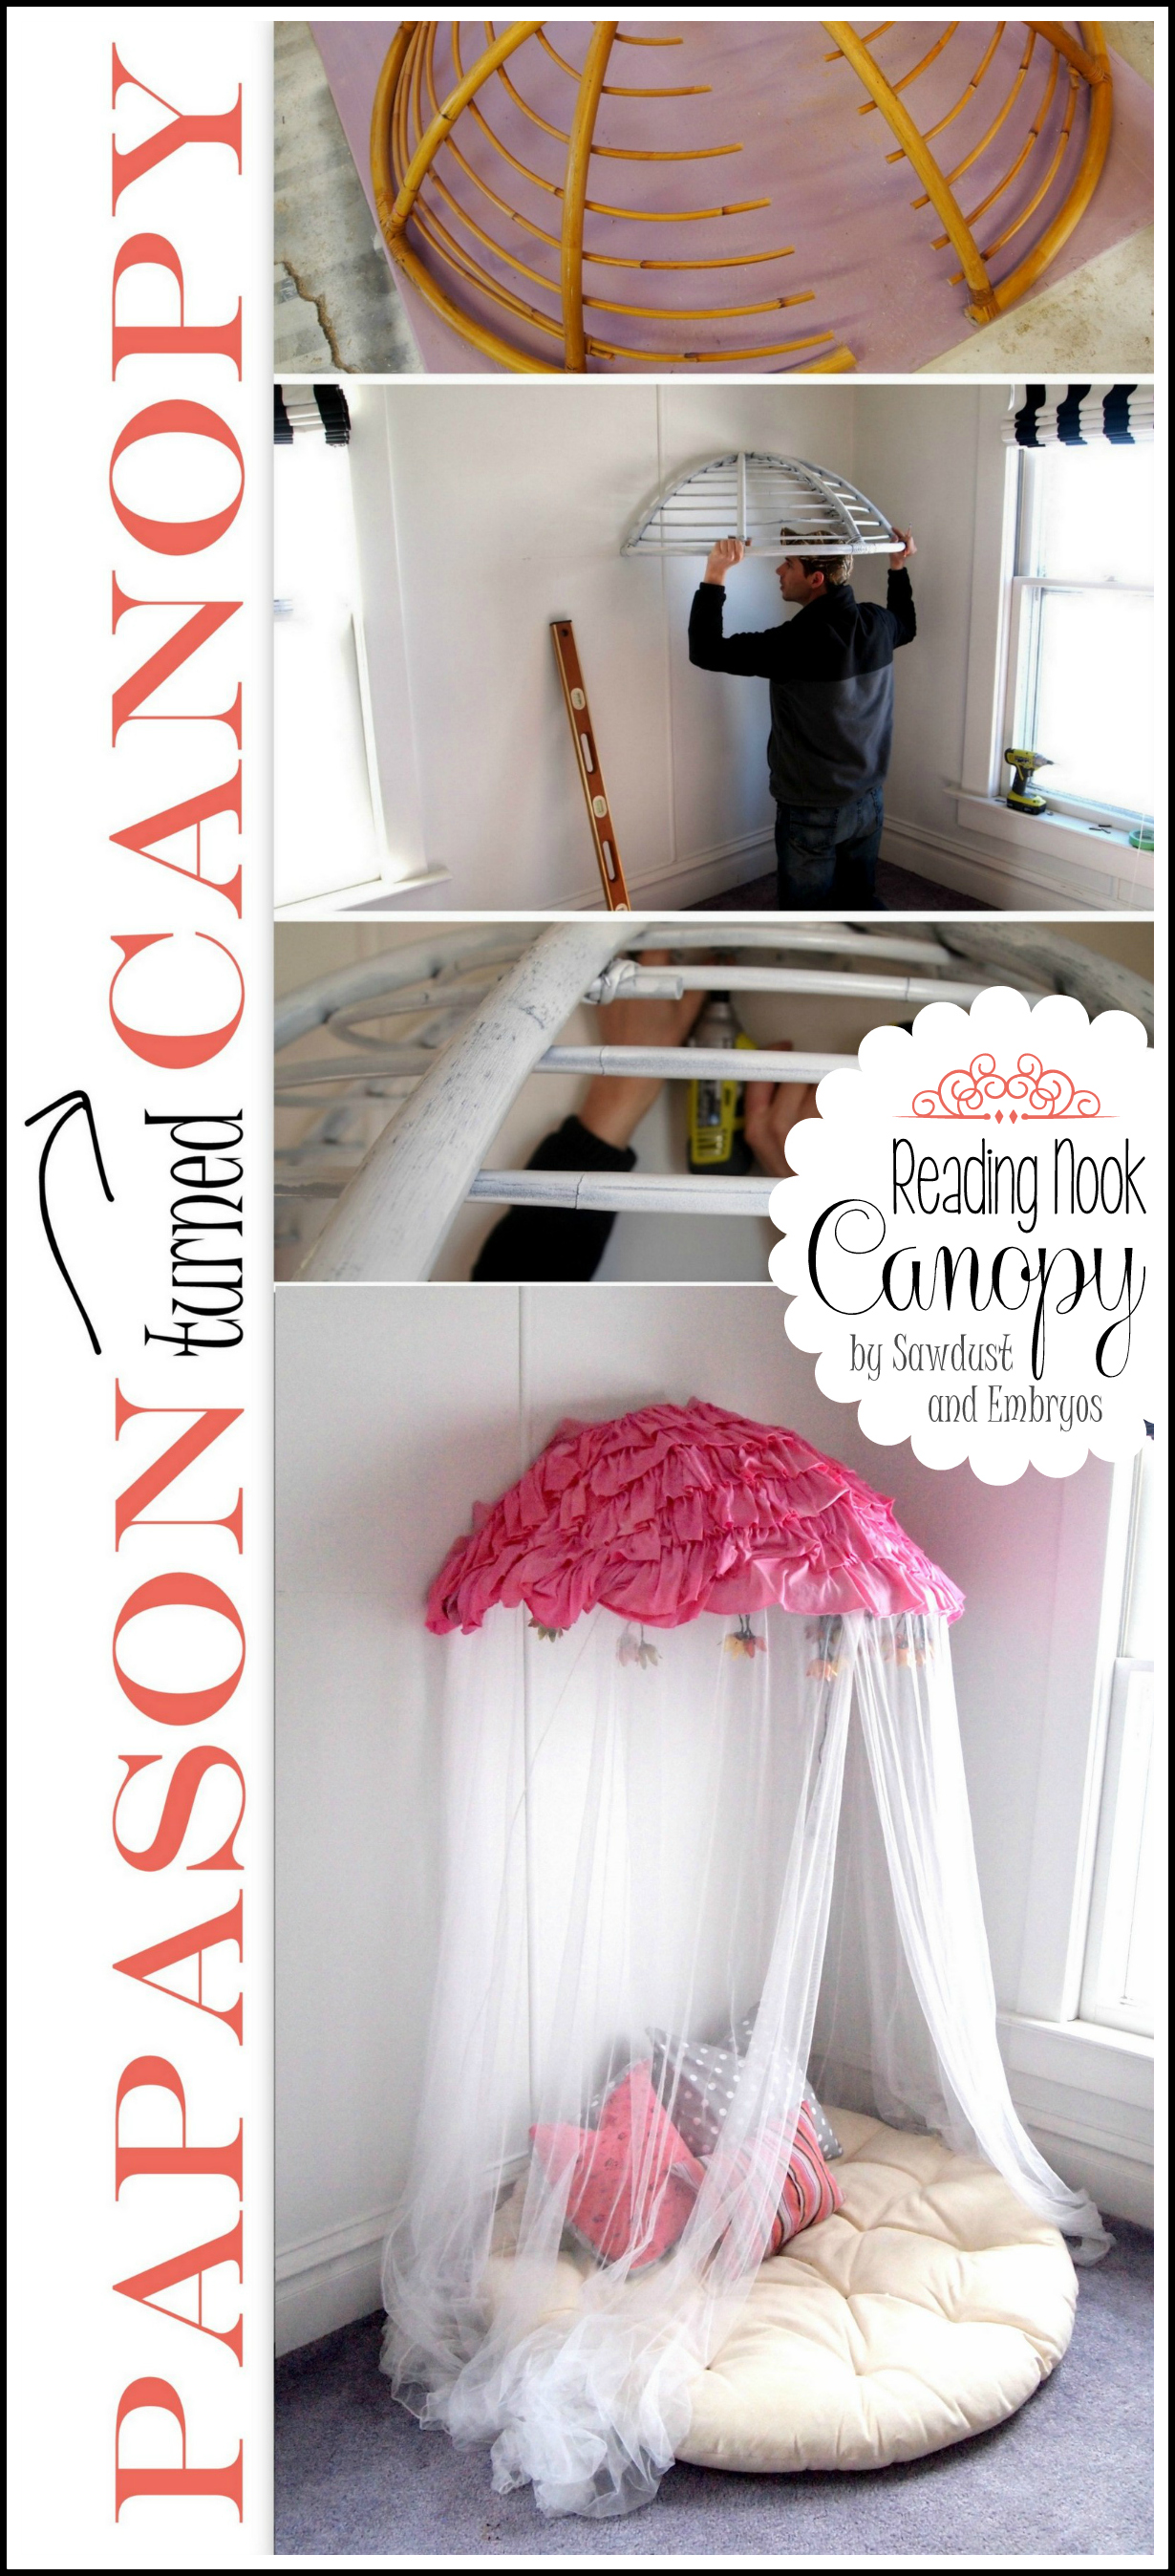 Turn an old papasan chair in to a Canopy Reading Nook for the littles! {Sawdust and Embryos}